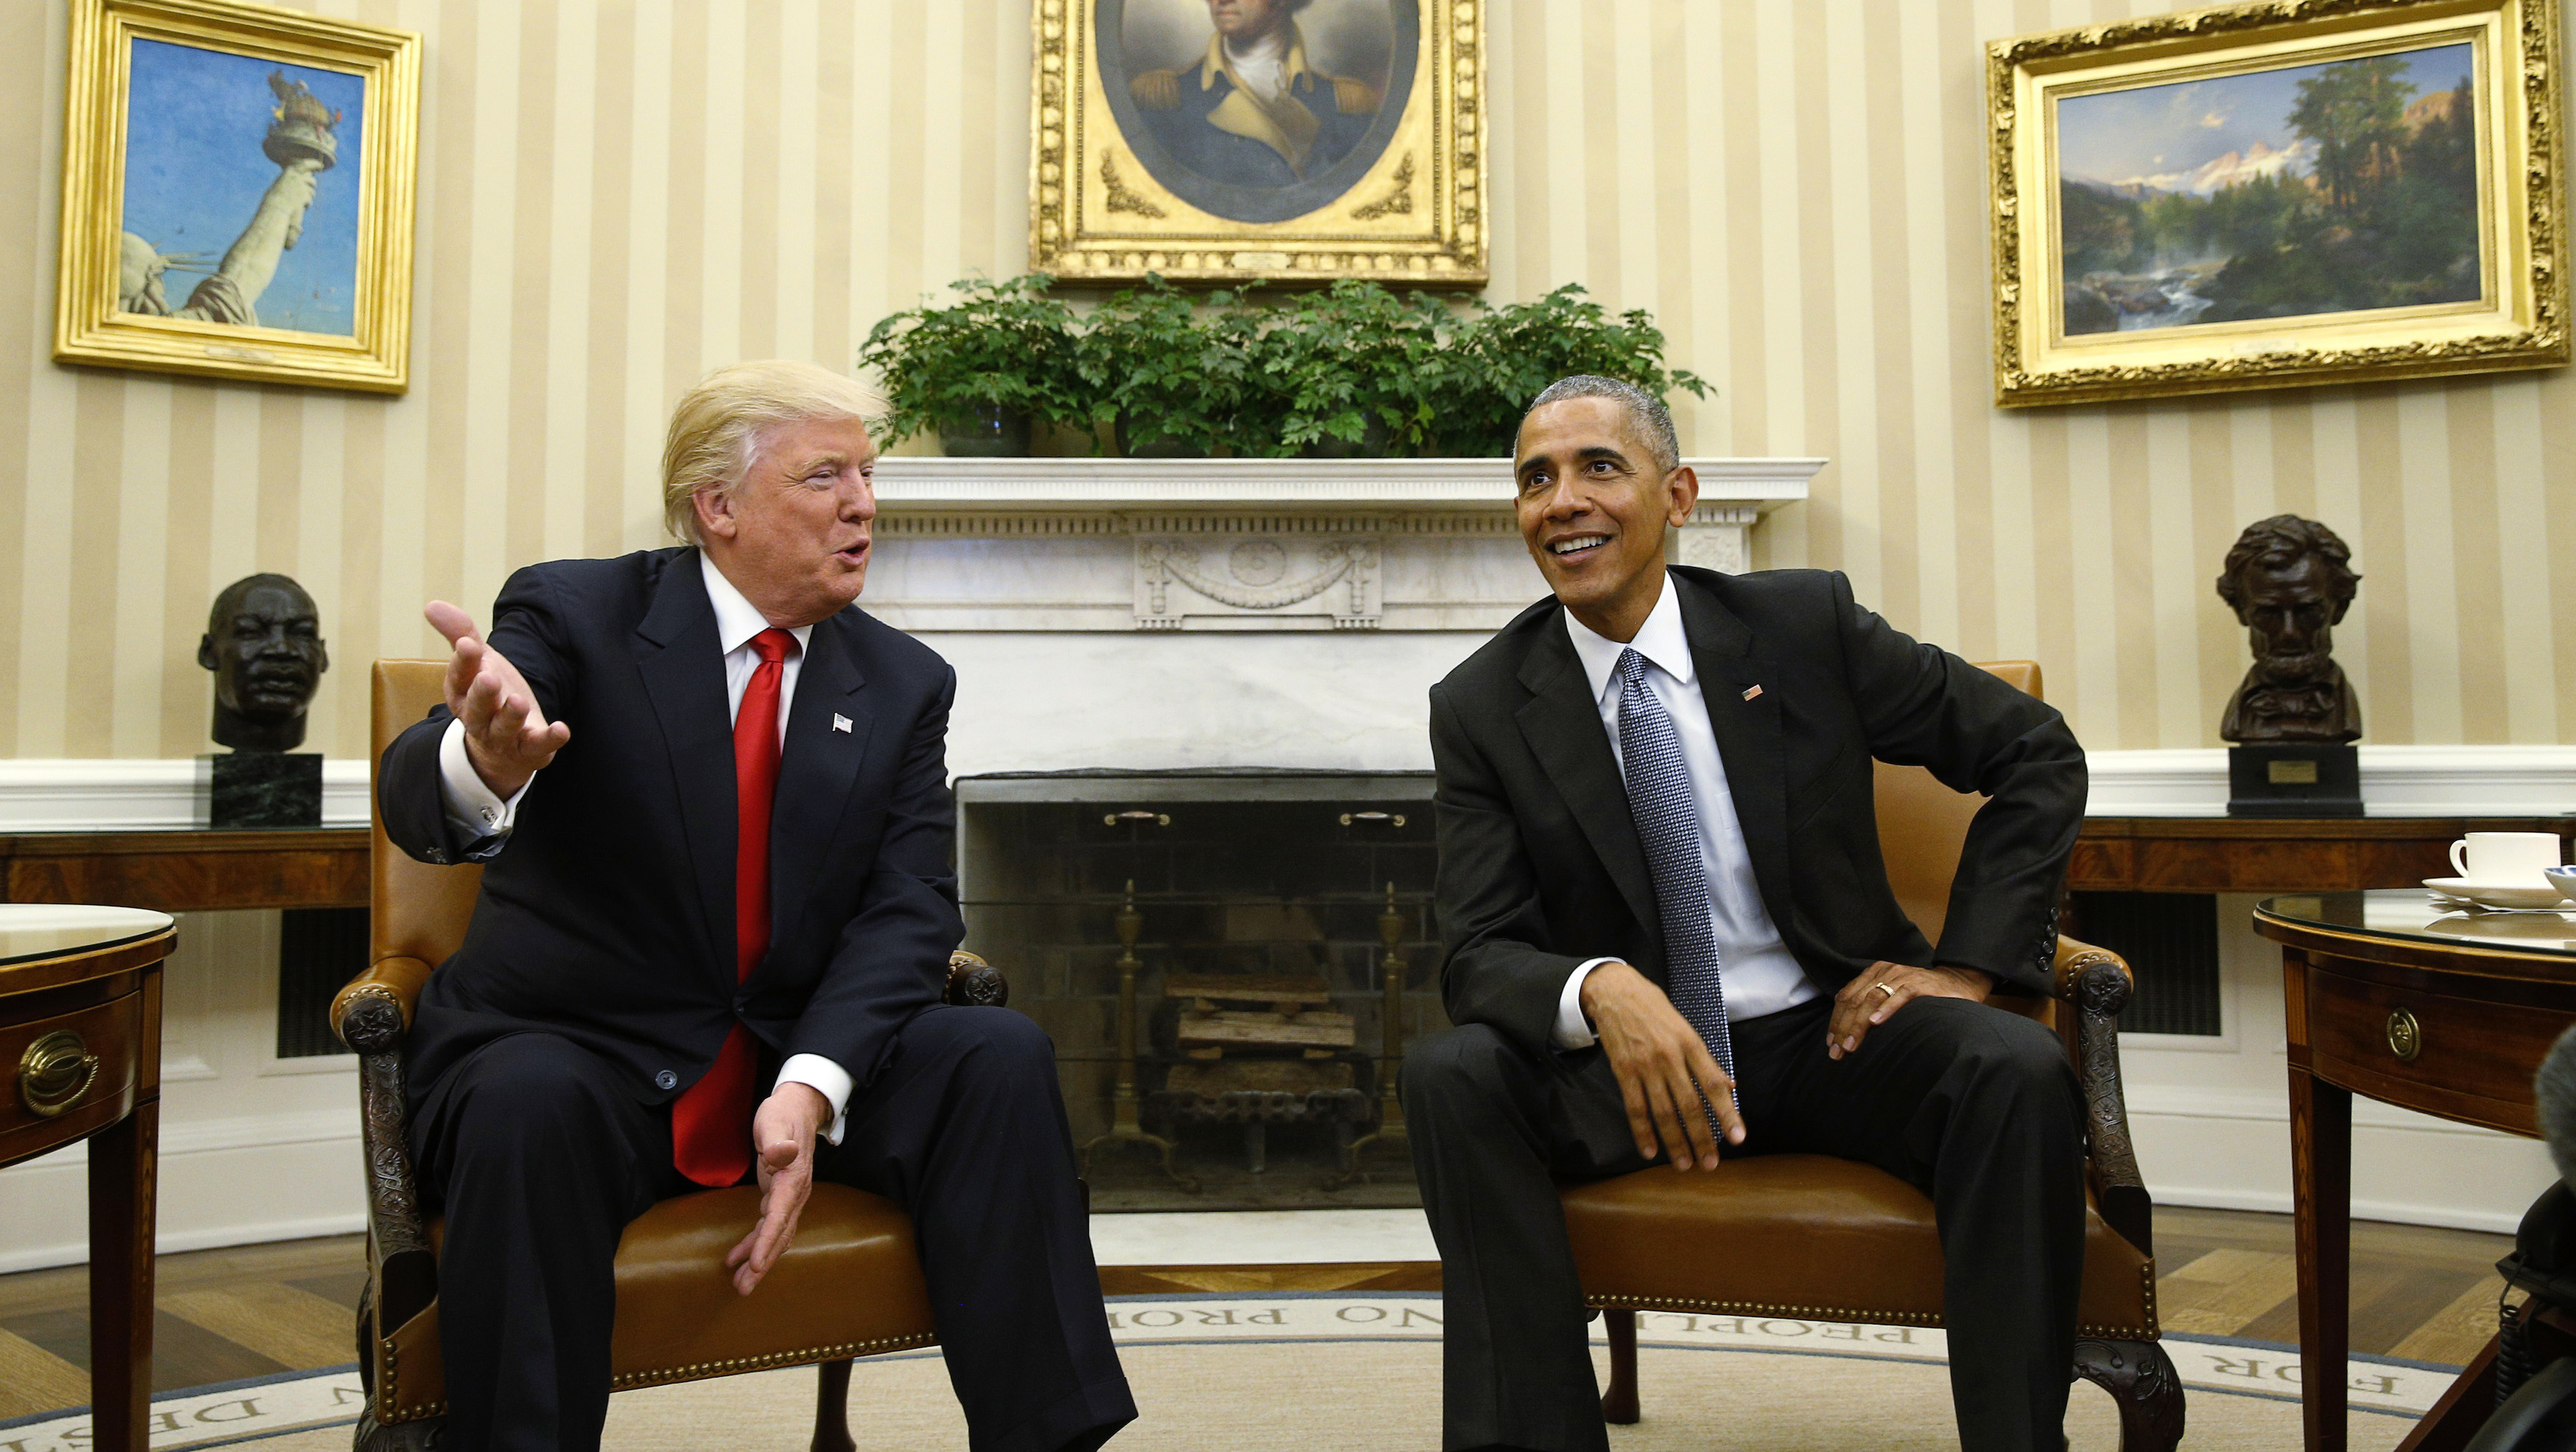 U.S. President Barack Obama meets with President-elect Donald Trump (L) in the Oval Office of the White House in Washington November 10, 2016.REUTERS/Kevin Lamarque - RTX2T2OY